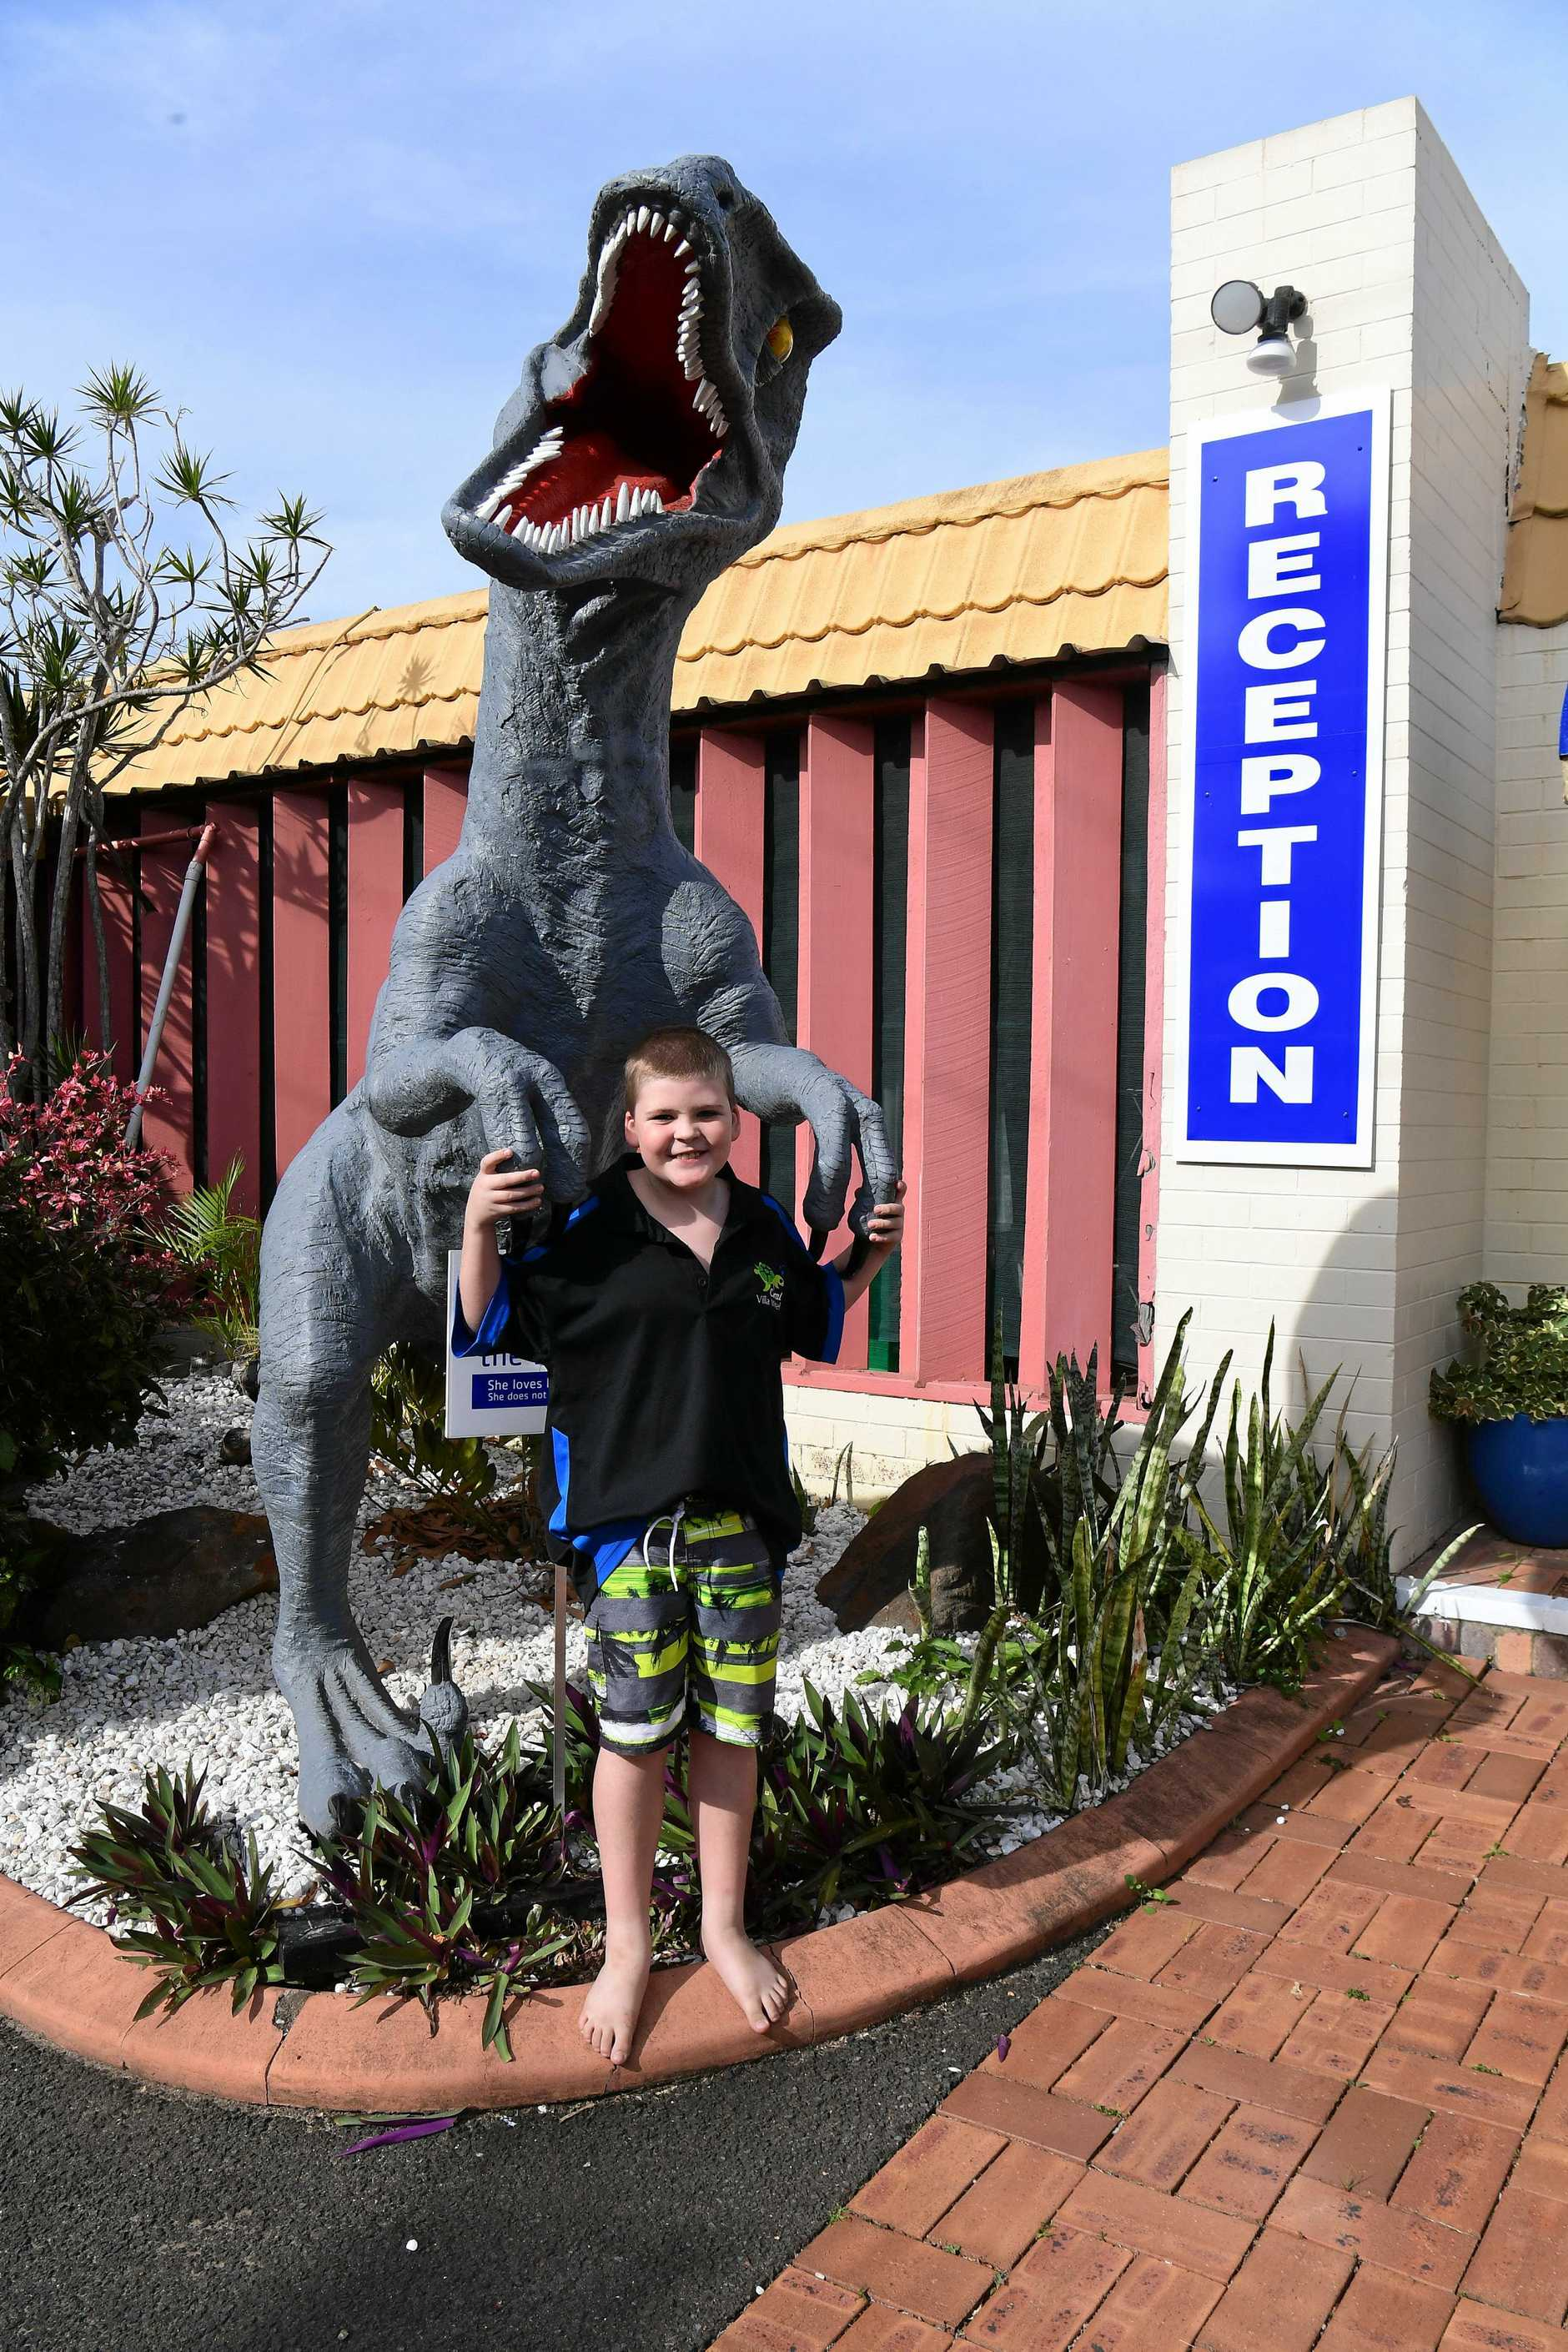 Charlie Rout with Roxy the dinosaur outside the Coral Villa Motel.